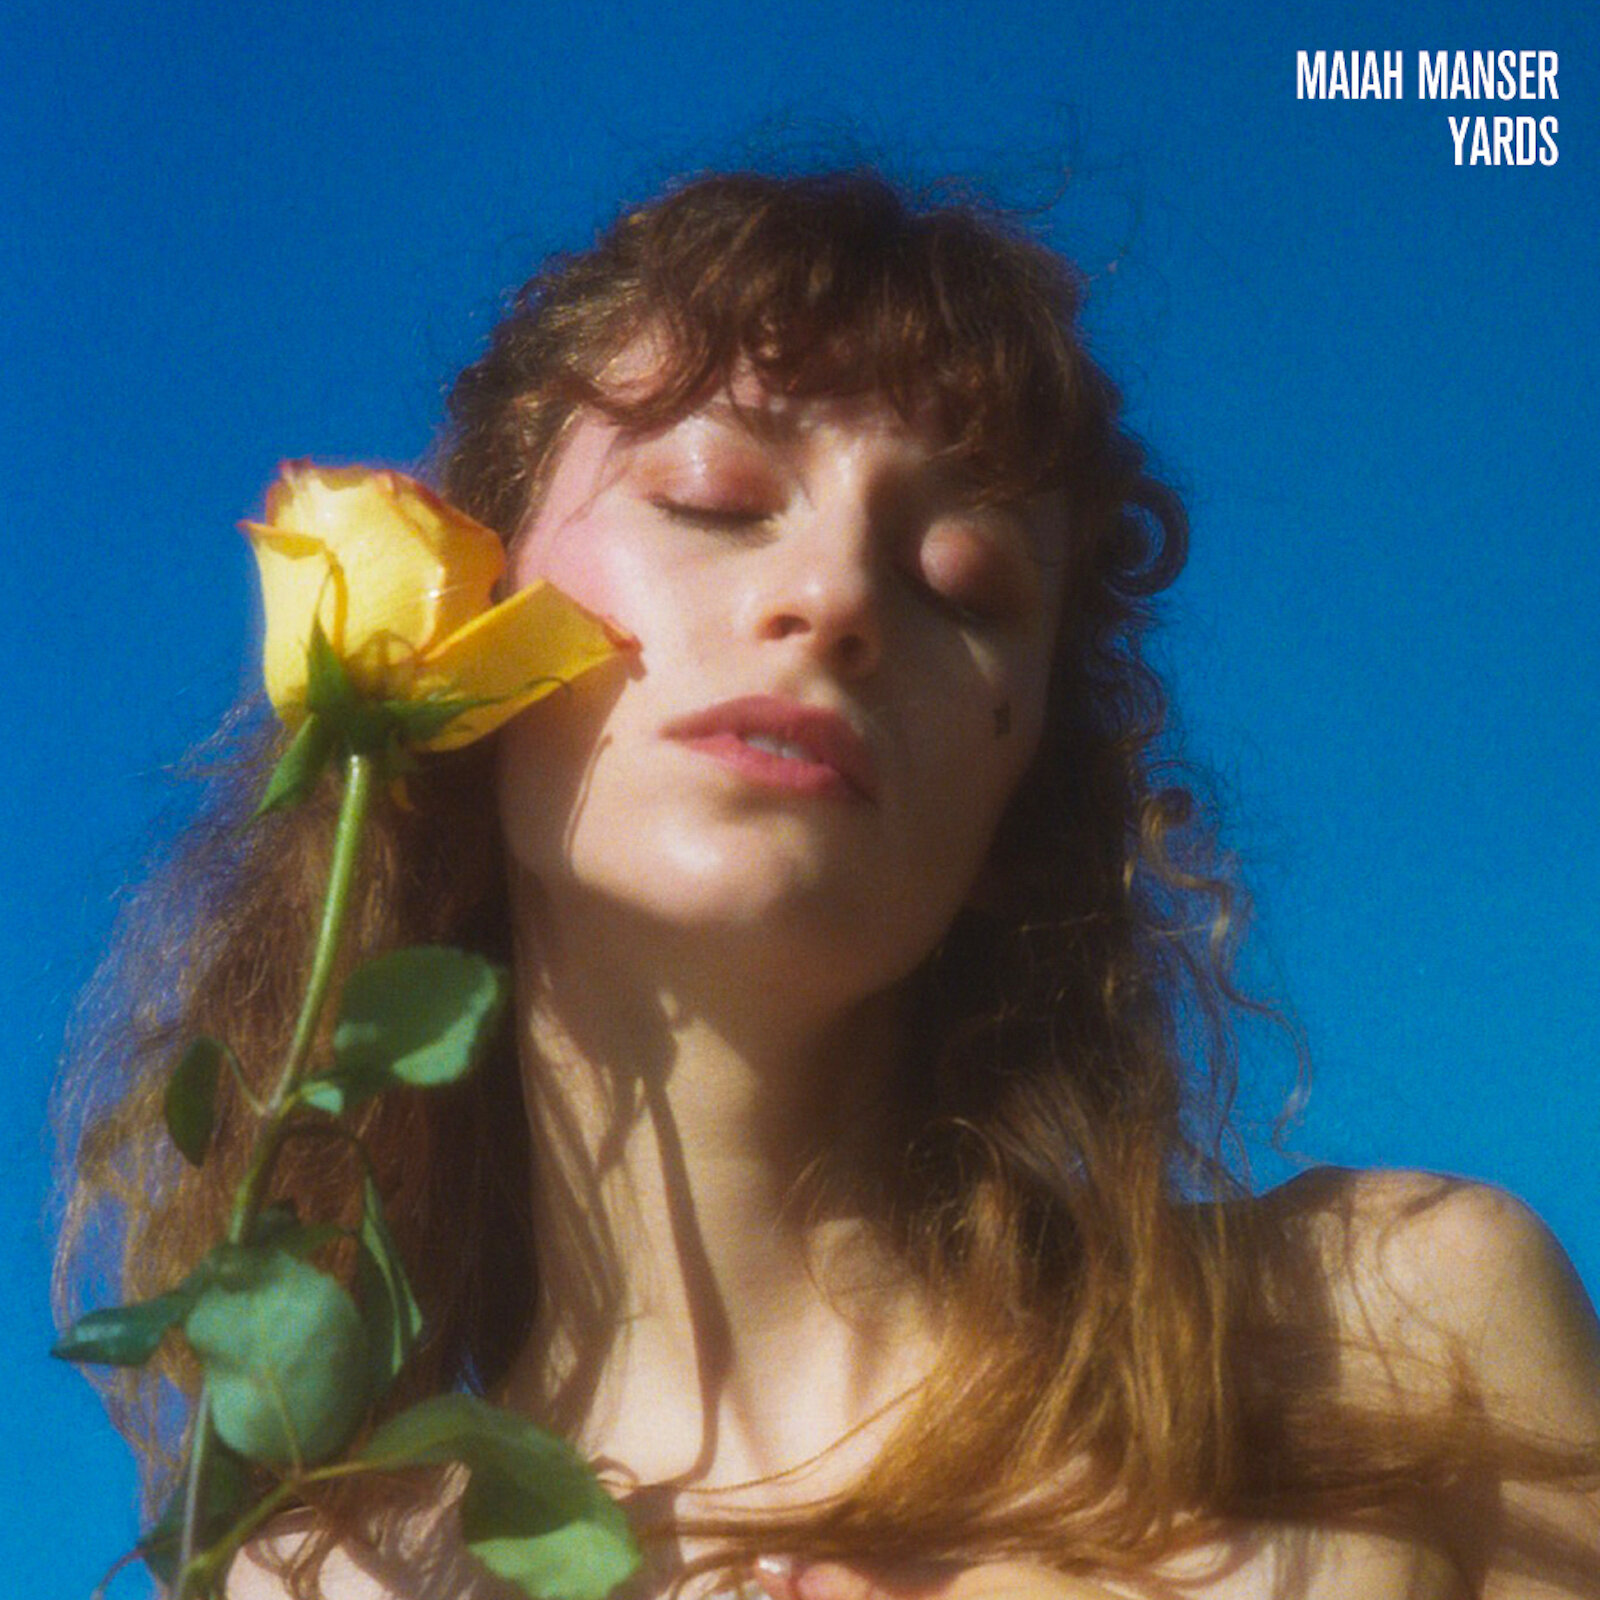 """""""Yards"""" released November 9th, 2018"""